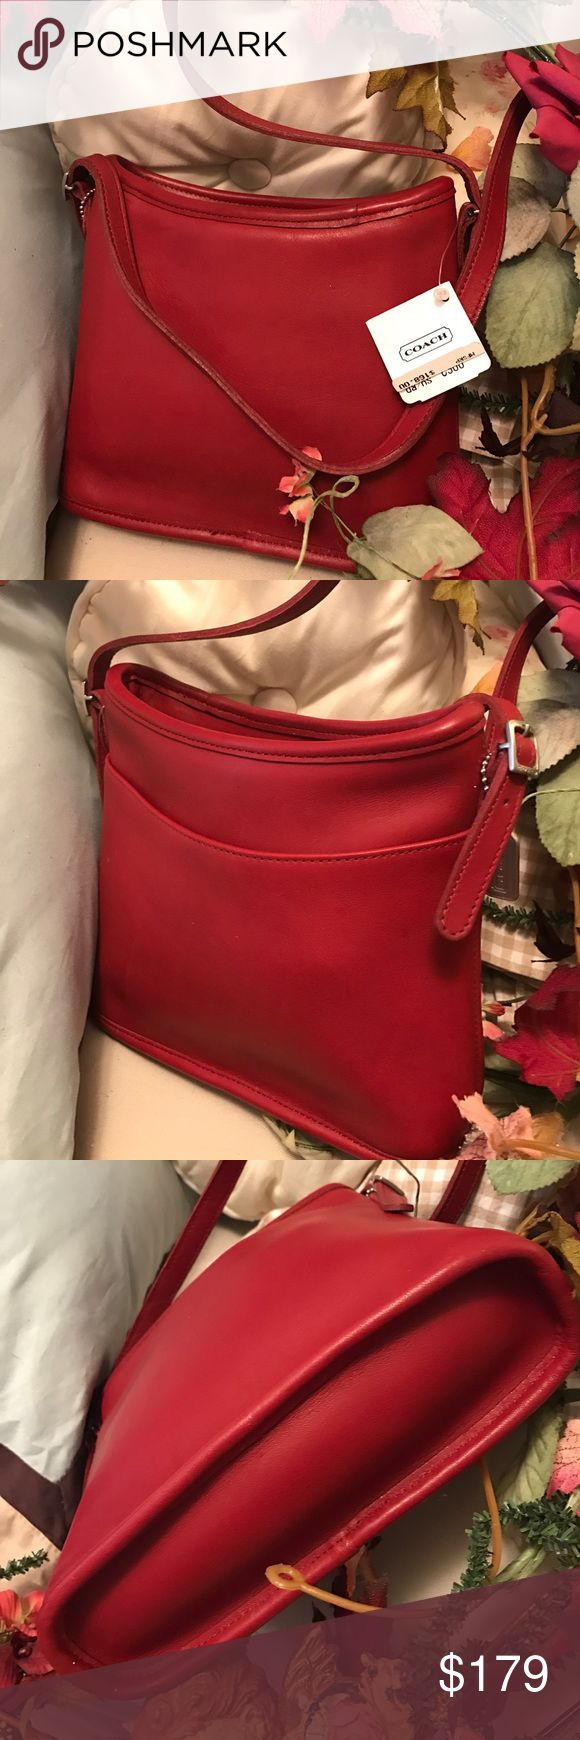 Coach Vintage New, Old Stock Red Shoulder Bag On the small side, vintage coach bag, new with tags. Made in USA, gorgeous dark cherry red color. Coach Bags Shoulder Bags